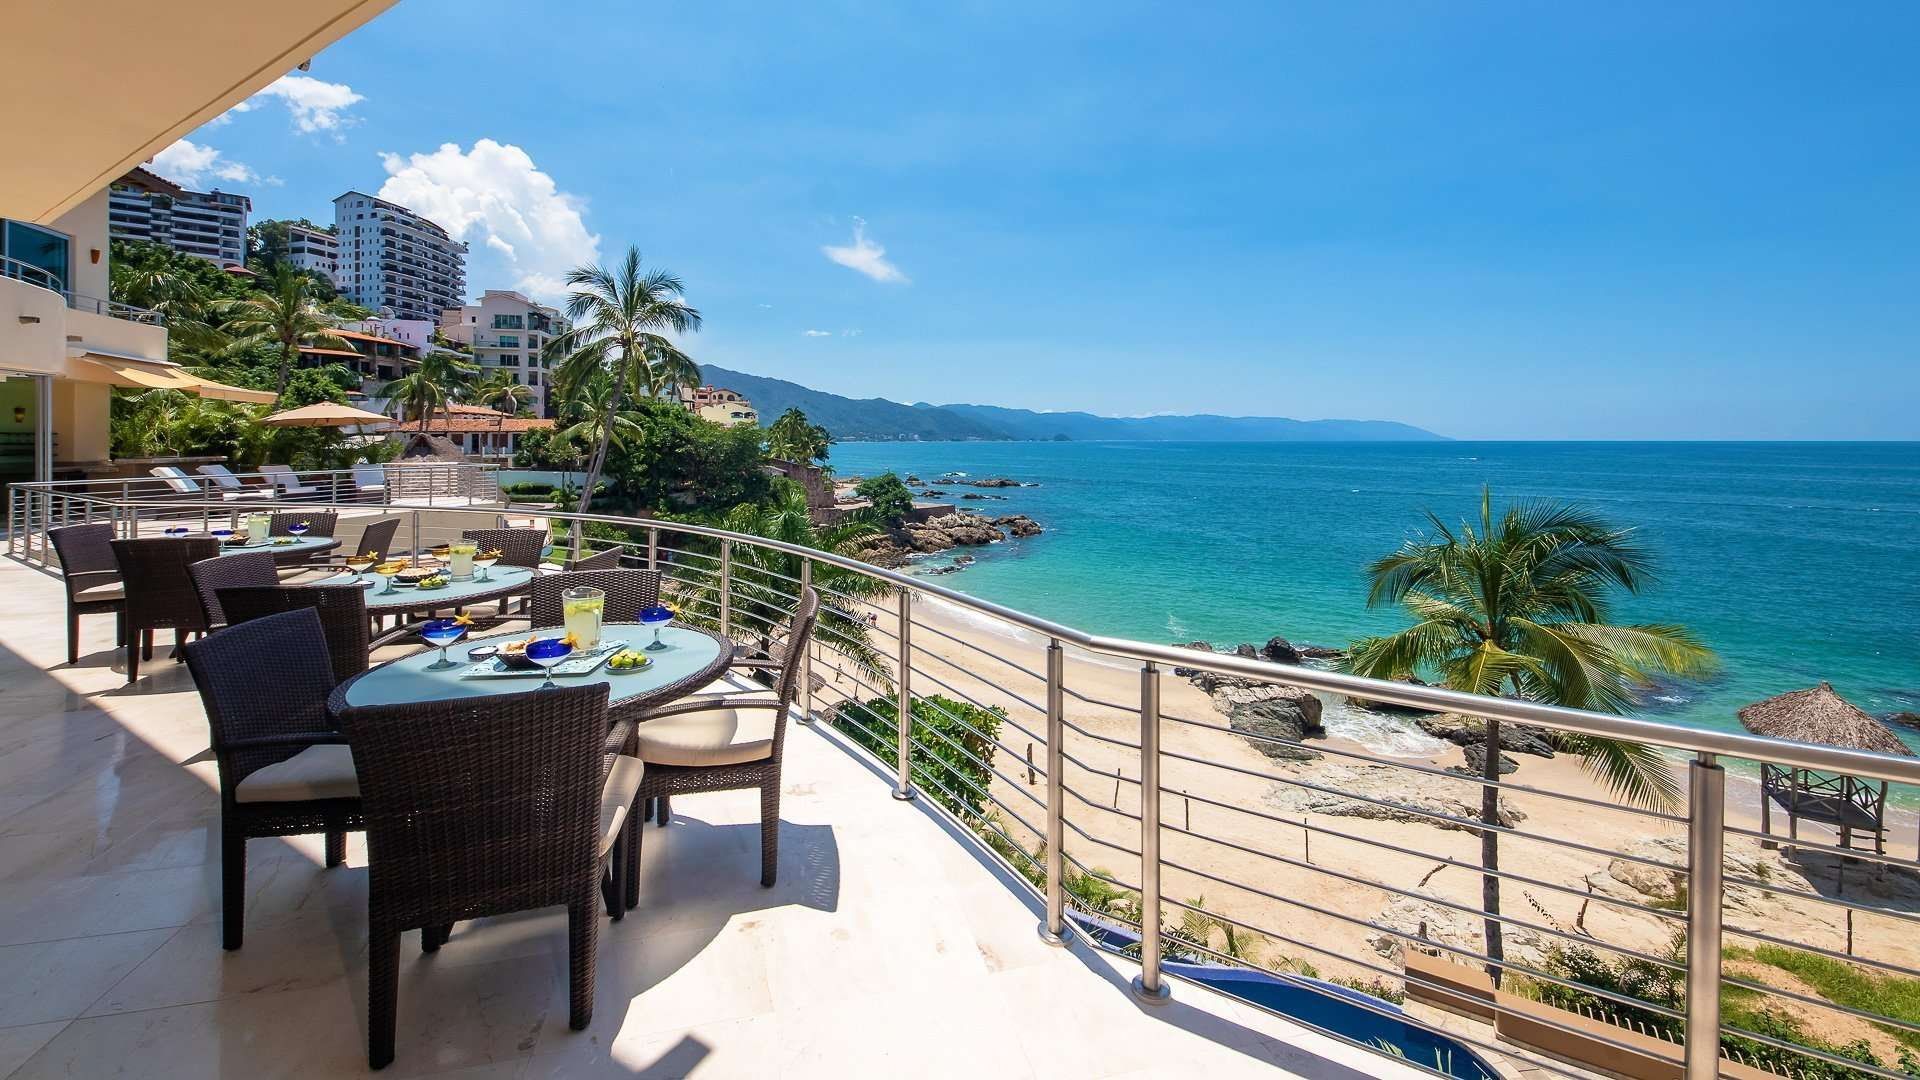 Luxury vacation rentals mexico - Puerto vallarta - Conchas chinas - No location 4 - Villa Montecito - Image 1/29